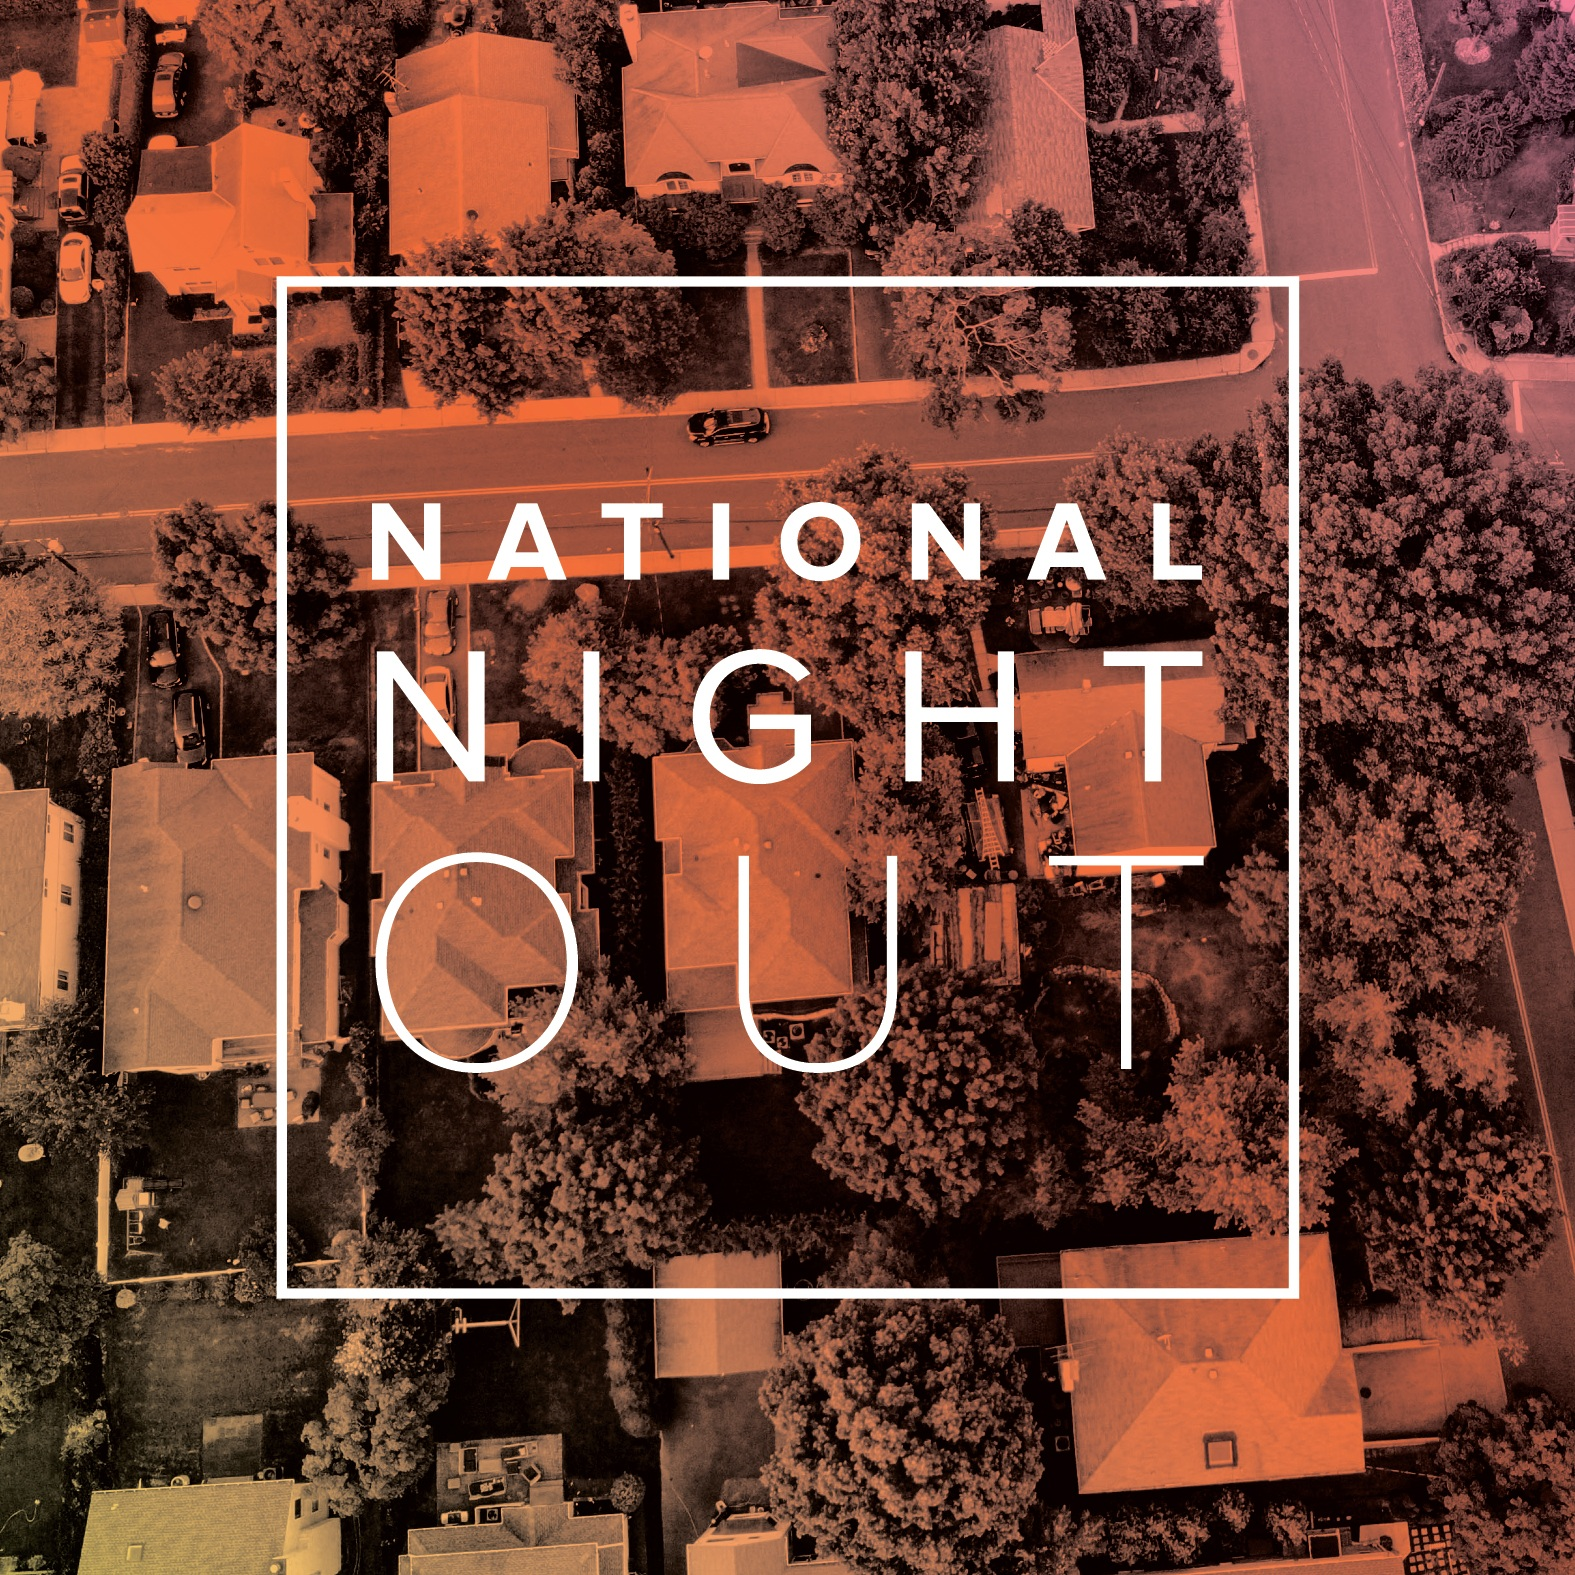 NationalNight-01.jpg